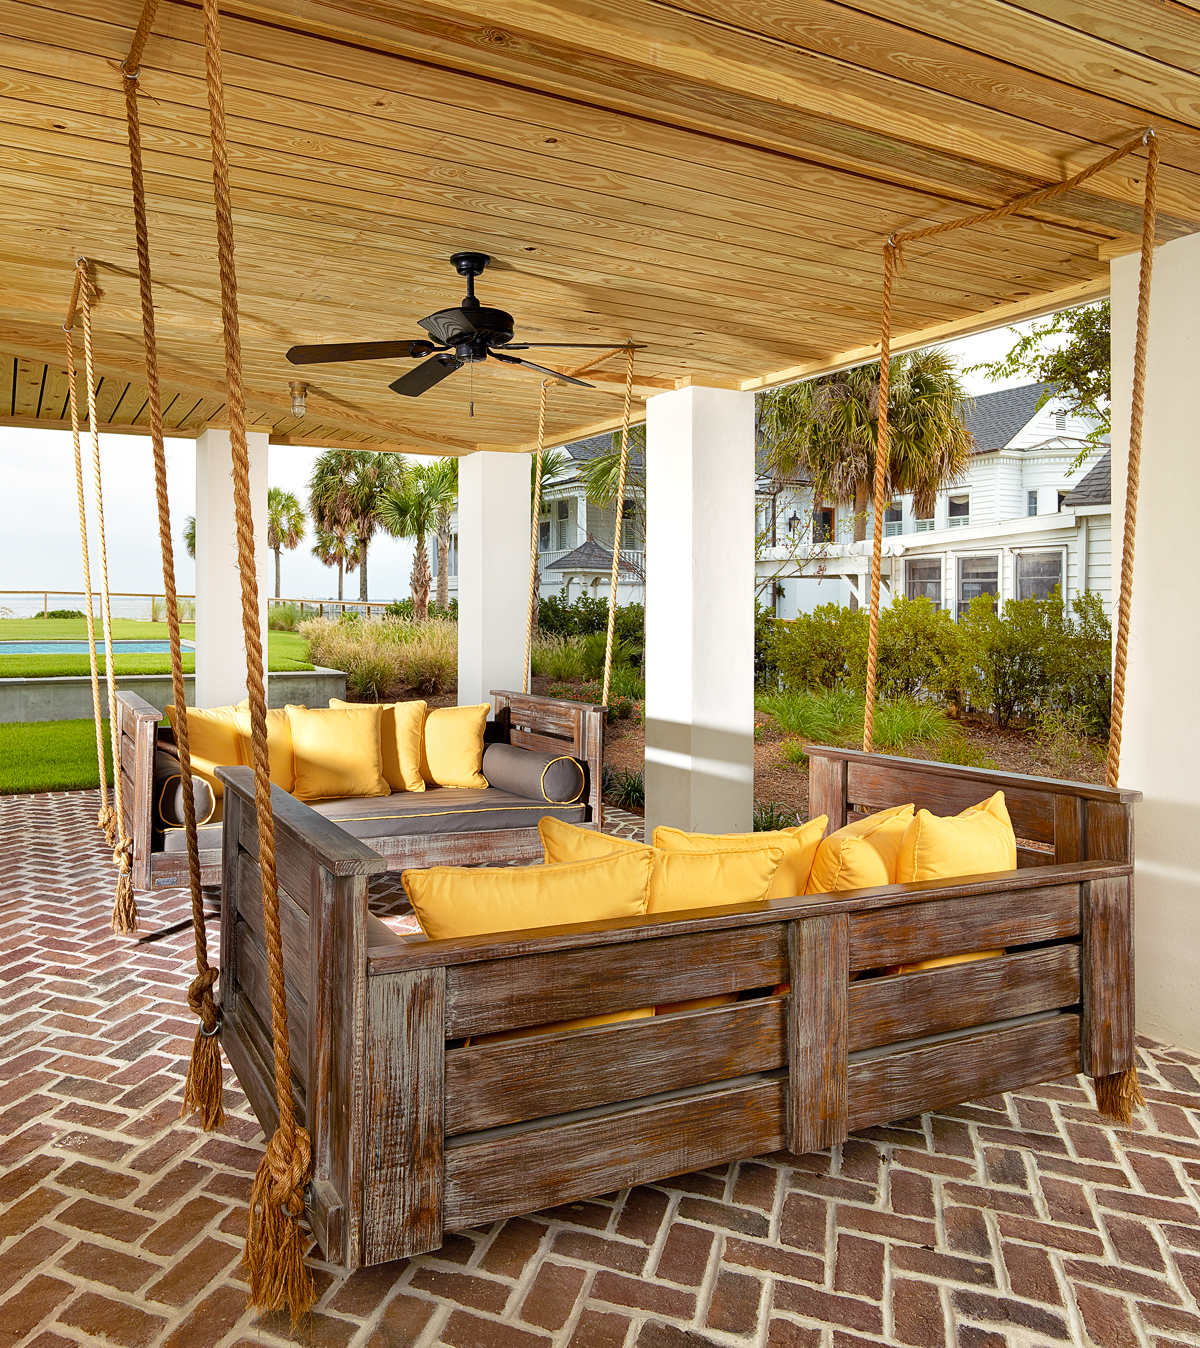 Daybed Porch Swings With Stand Regarding Latest Popular Swinging Bed Plan Hanging Outdoor Swing For Porch (View 22 of 30)